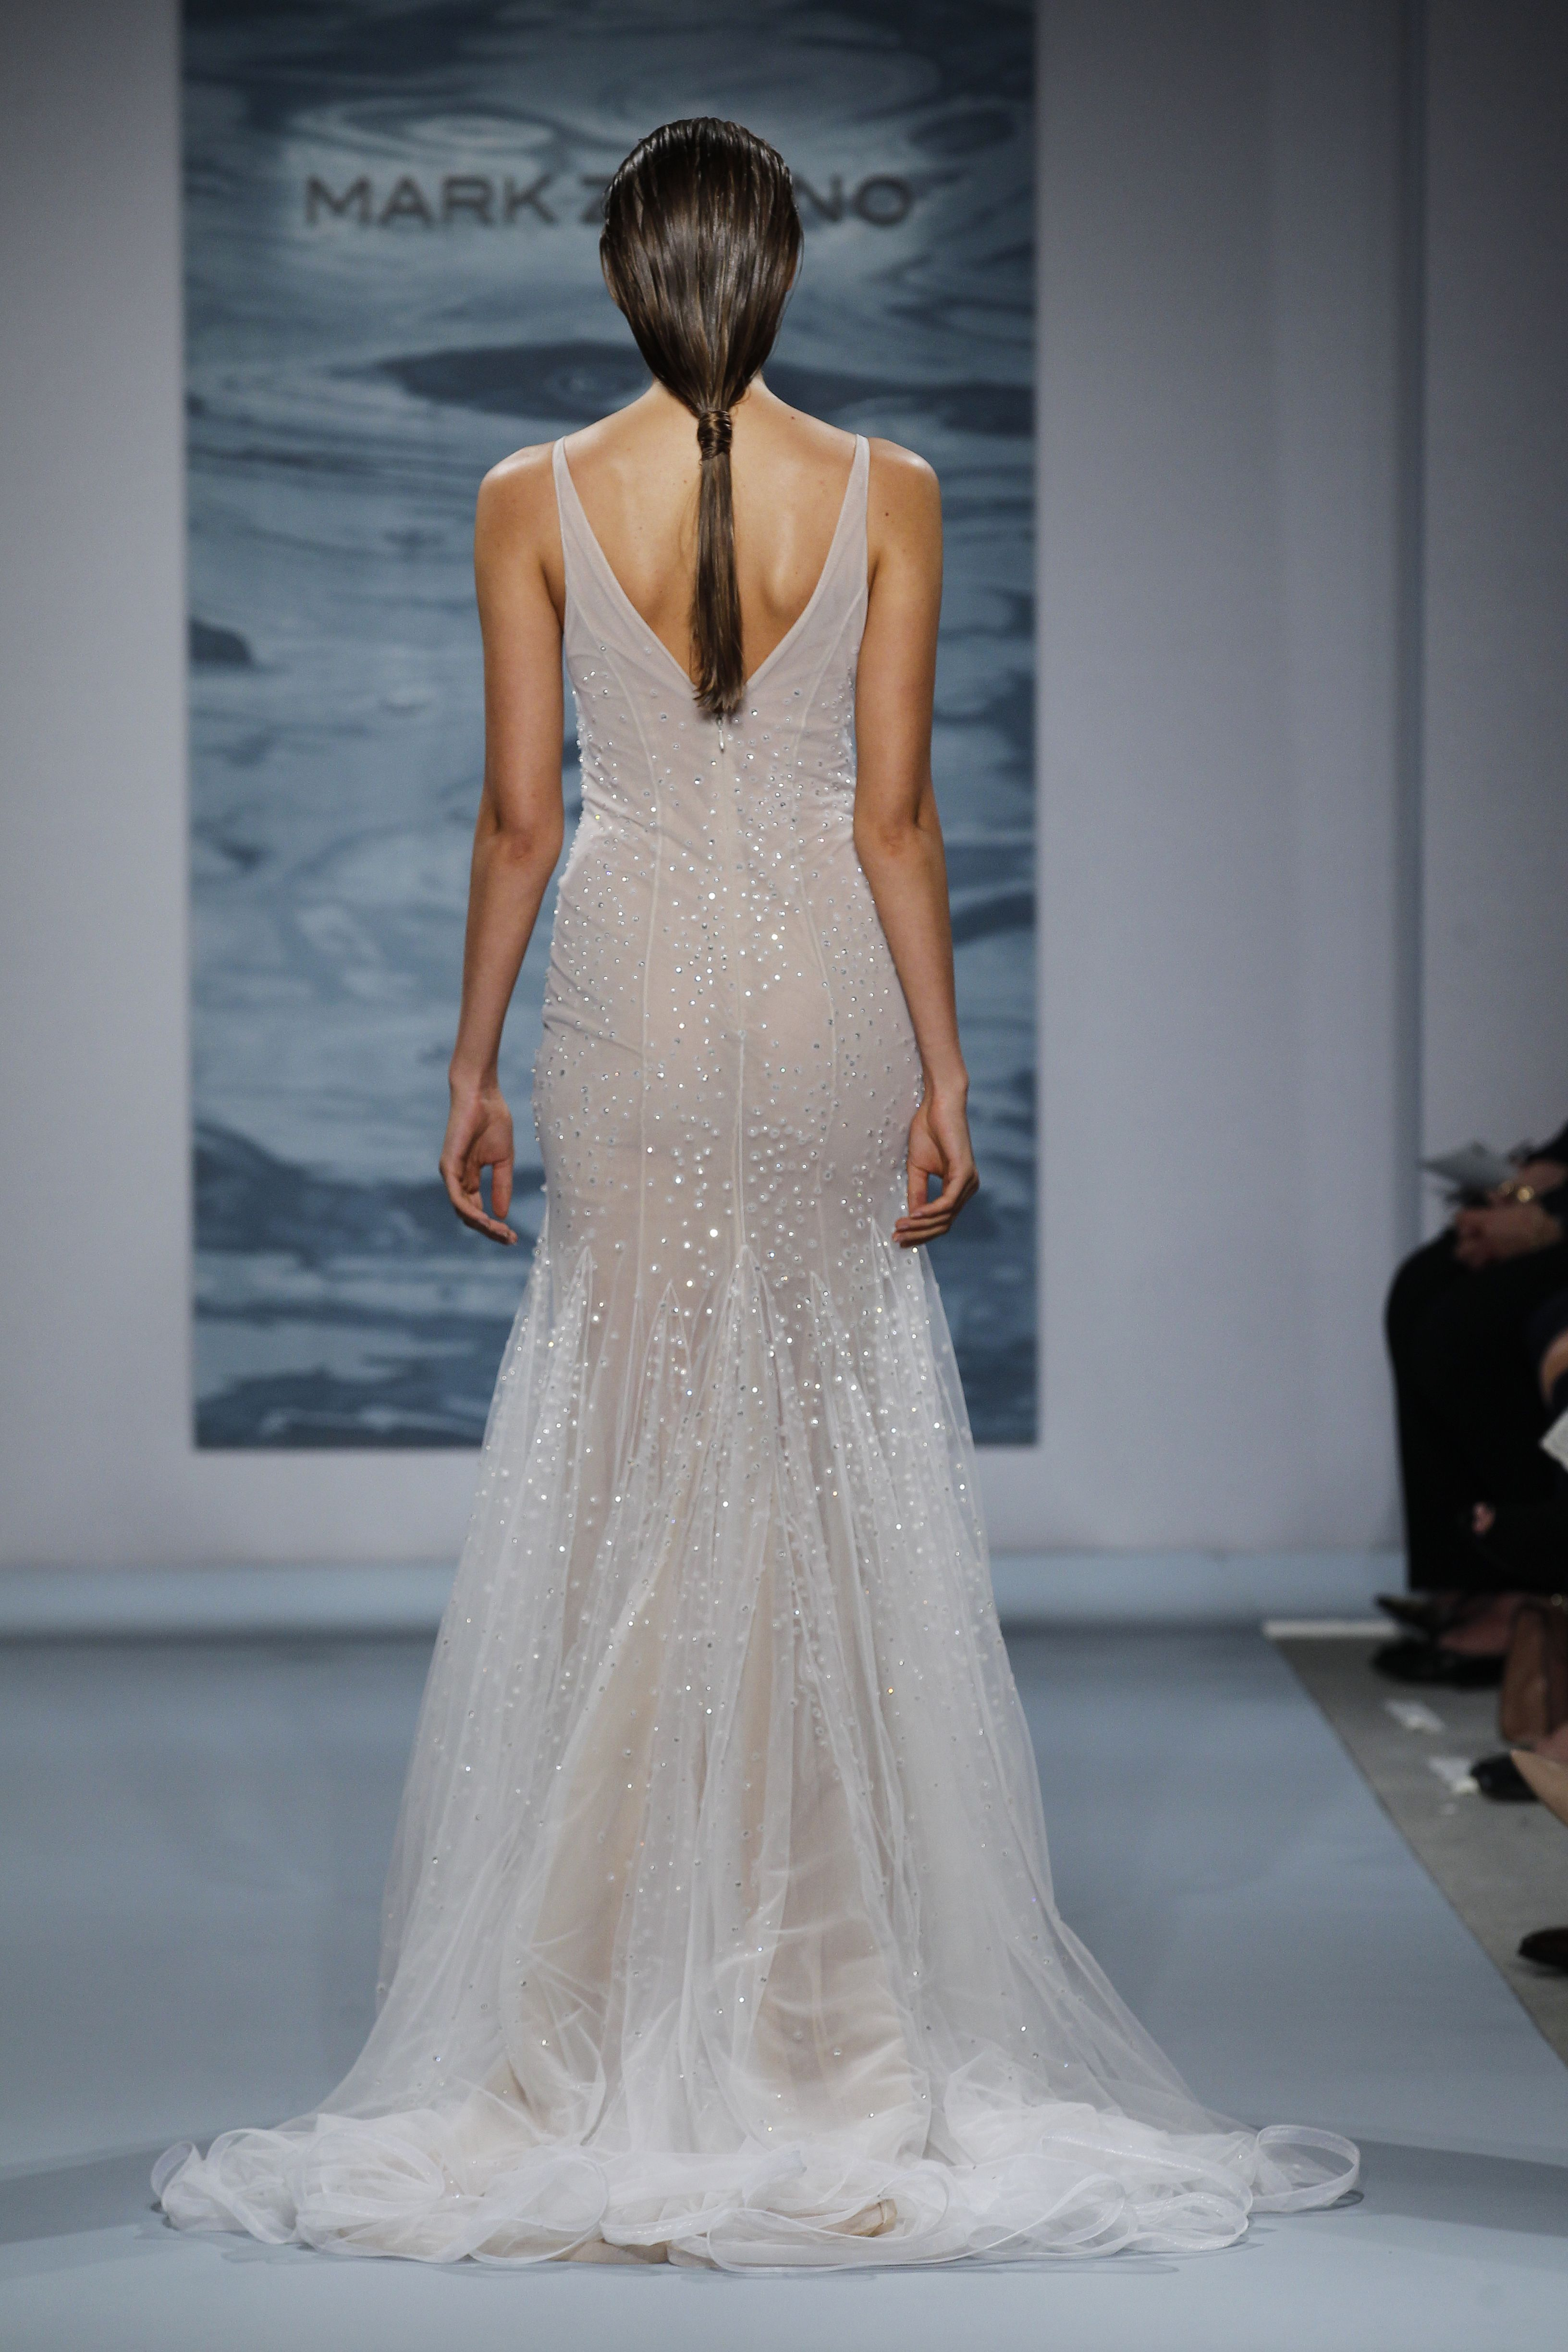 Mark zunino wedding dresses  Mark Zunino spring   Wedding dresses  Pinterest  Mark zunino